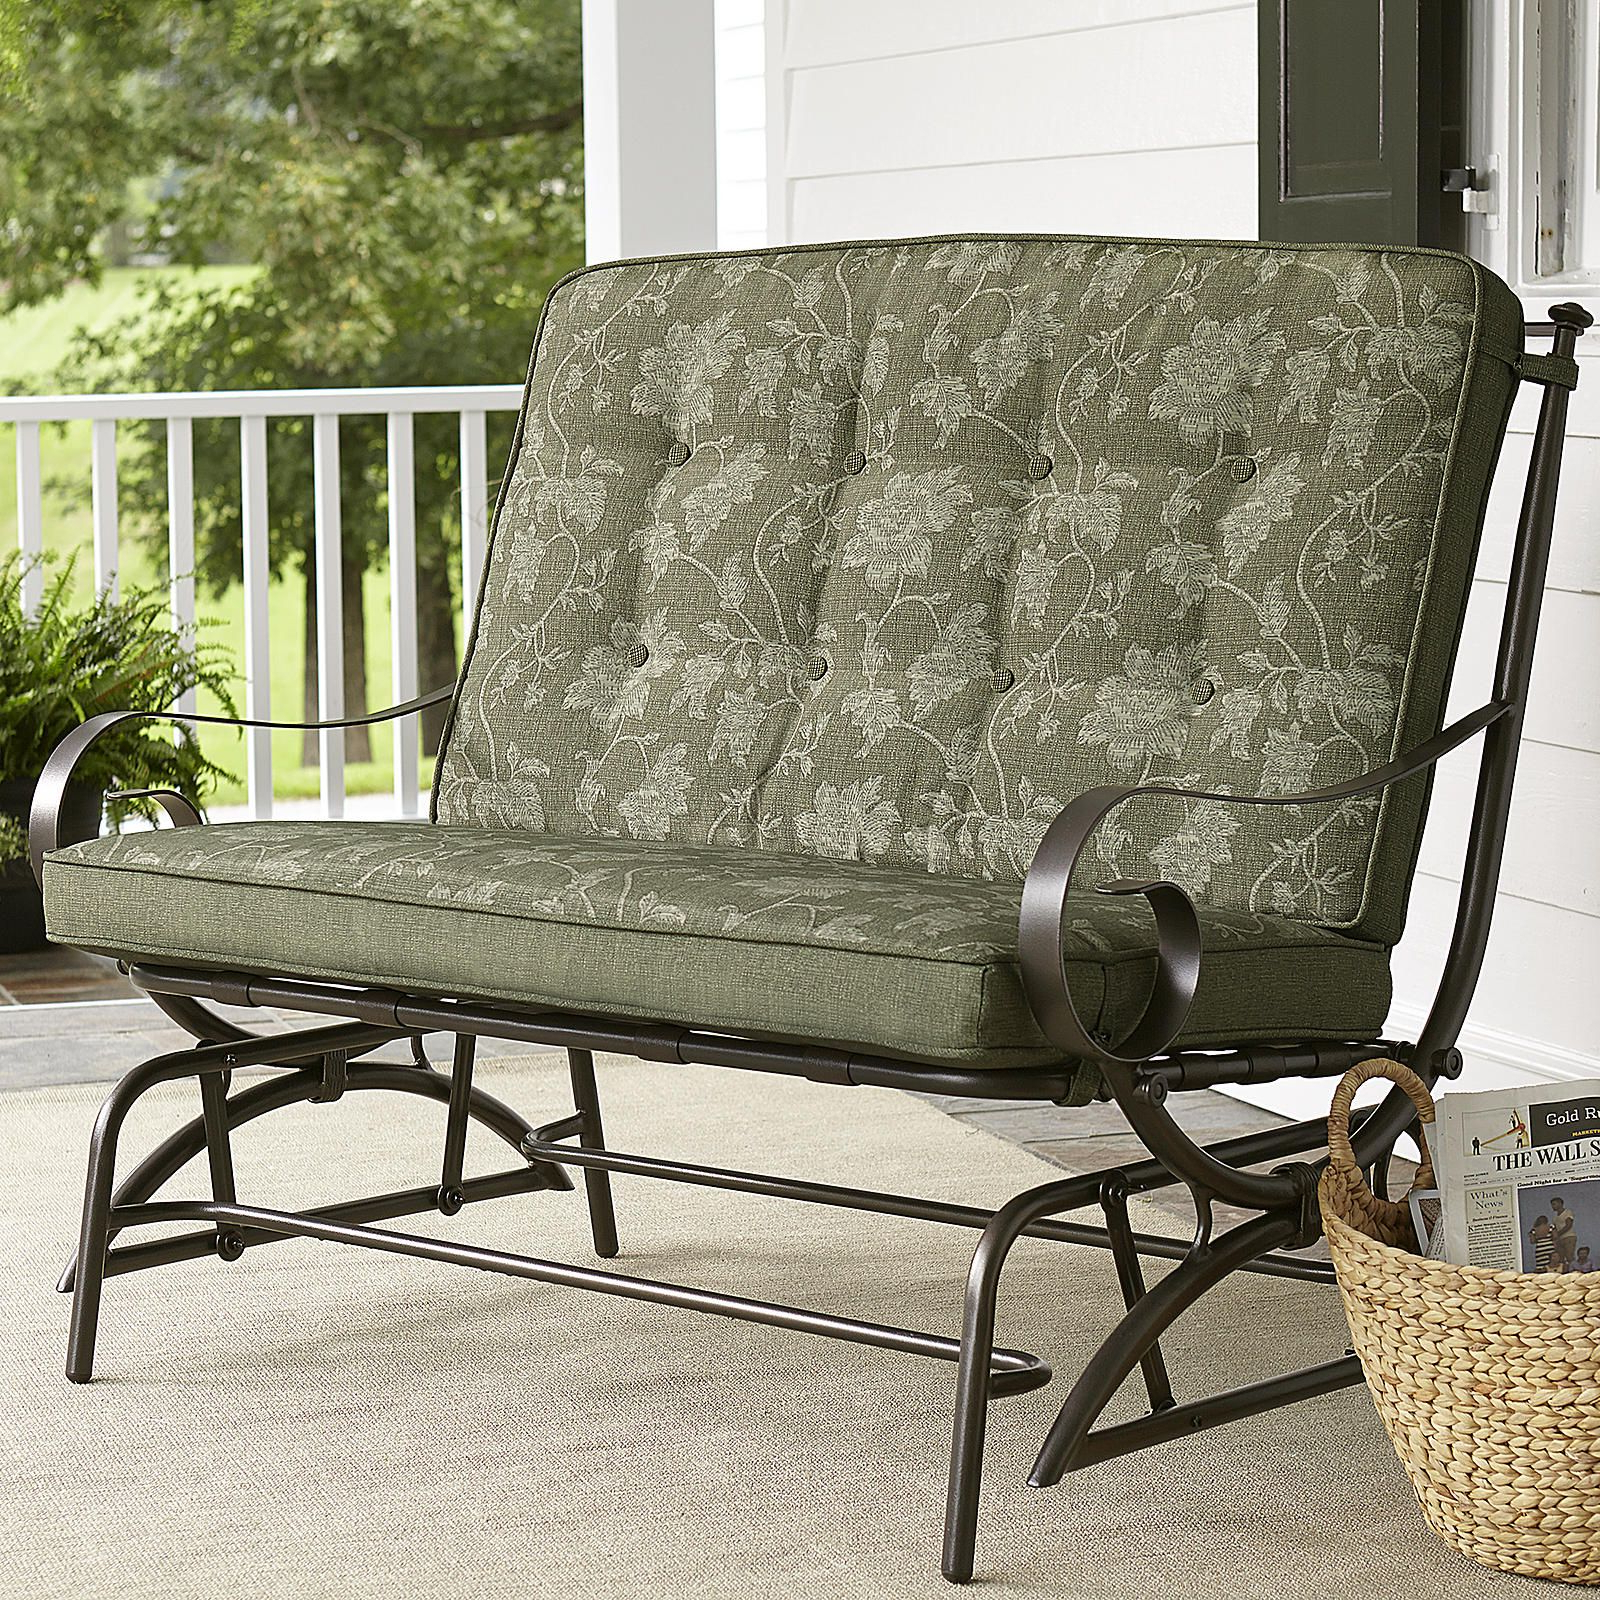 Well Liked Jaclyn Smith Cora Cushion Double Glider – Outdoor Living Throughout Glider Benches With Cushions (View 30 of 30)